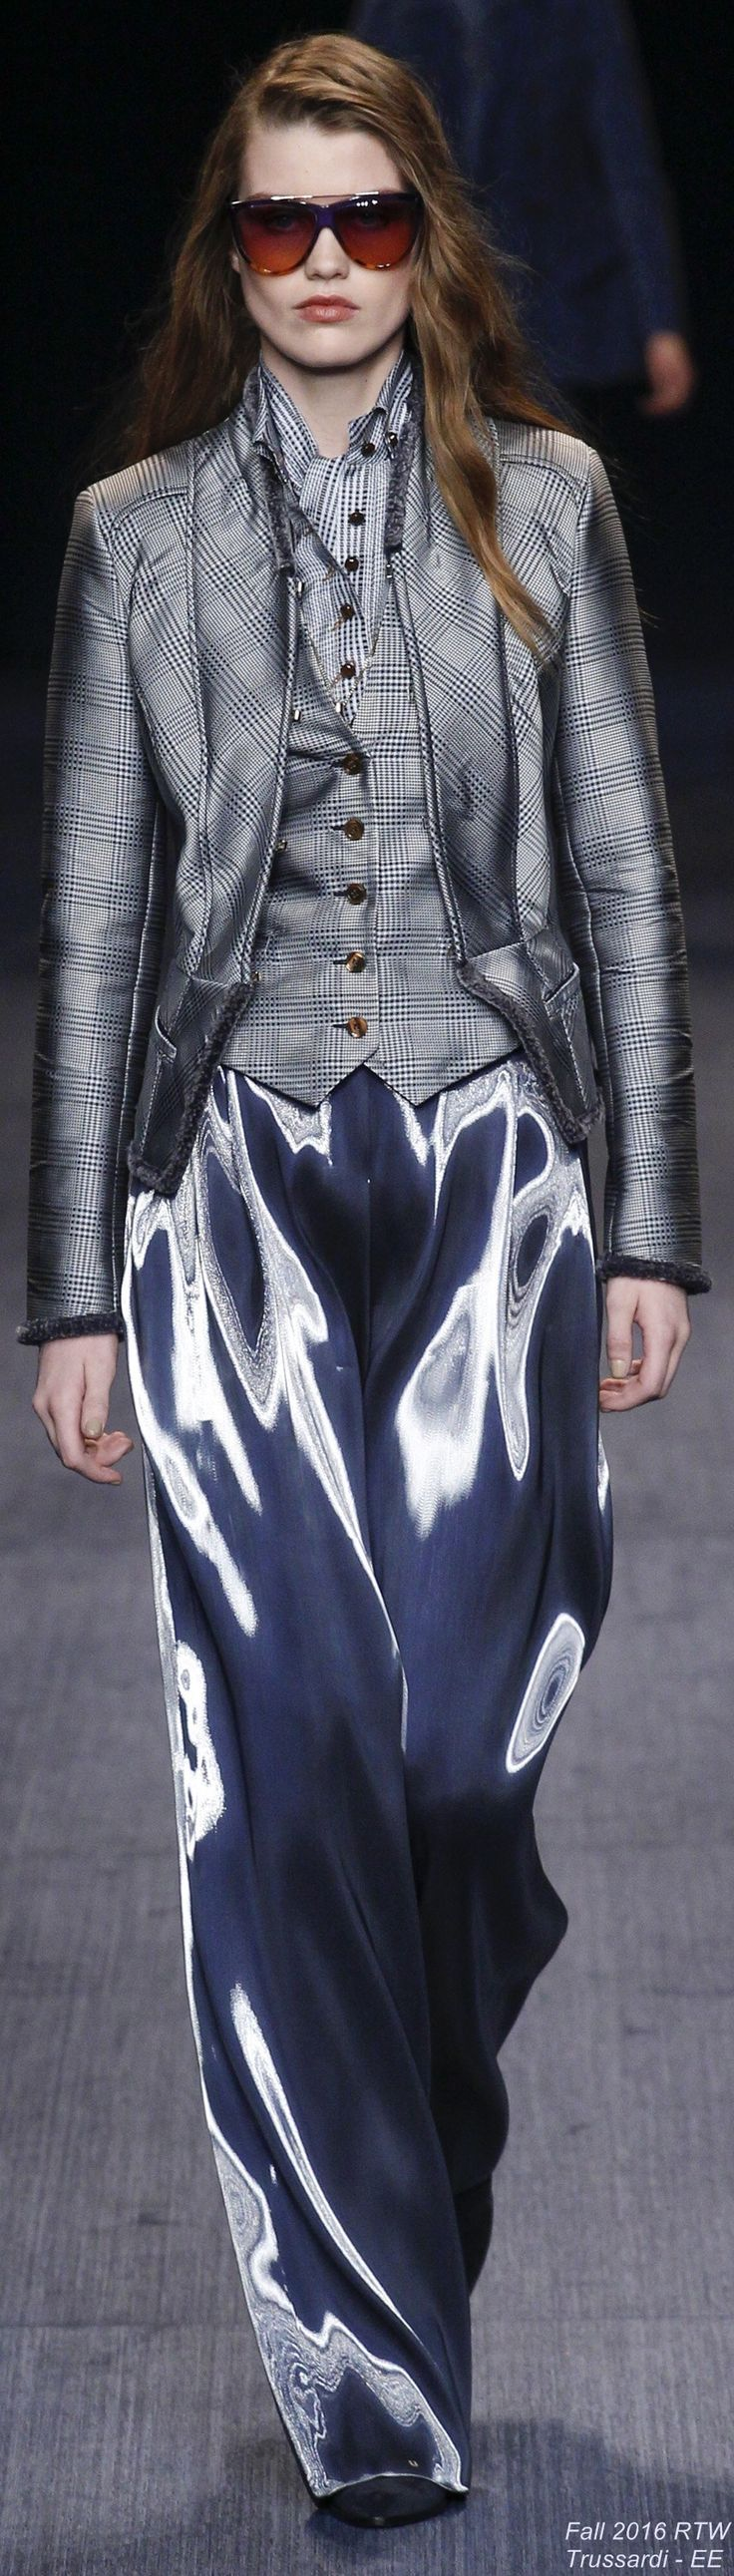 Fall 2016 Ready-to-Wear Trussardi ♦F&I♦